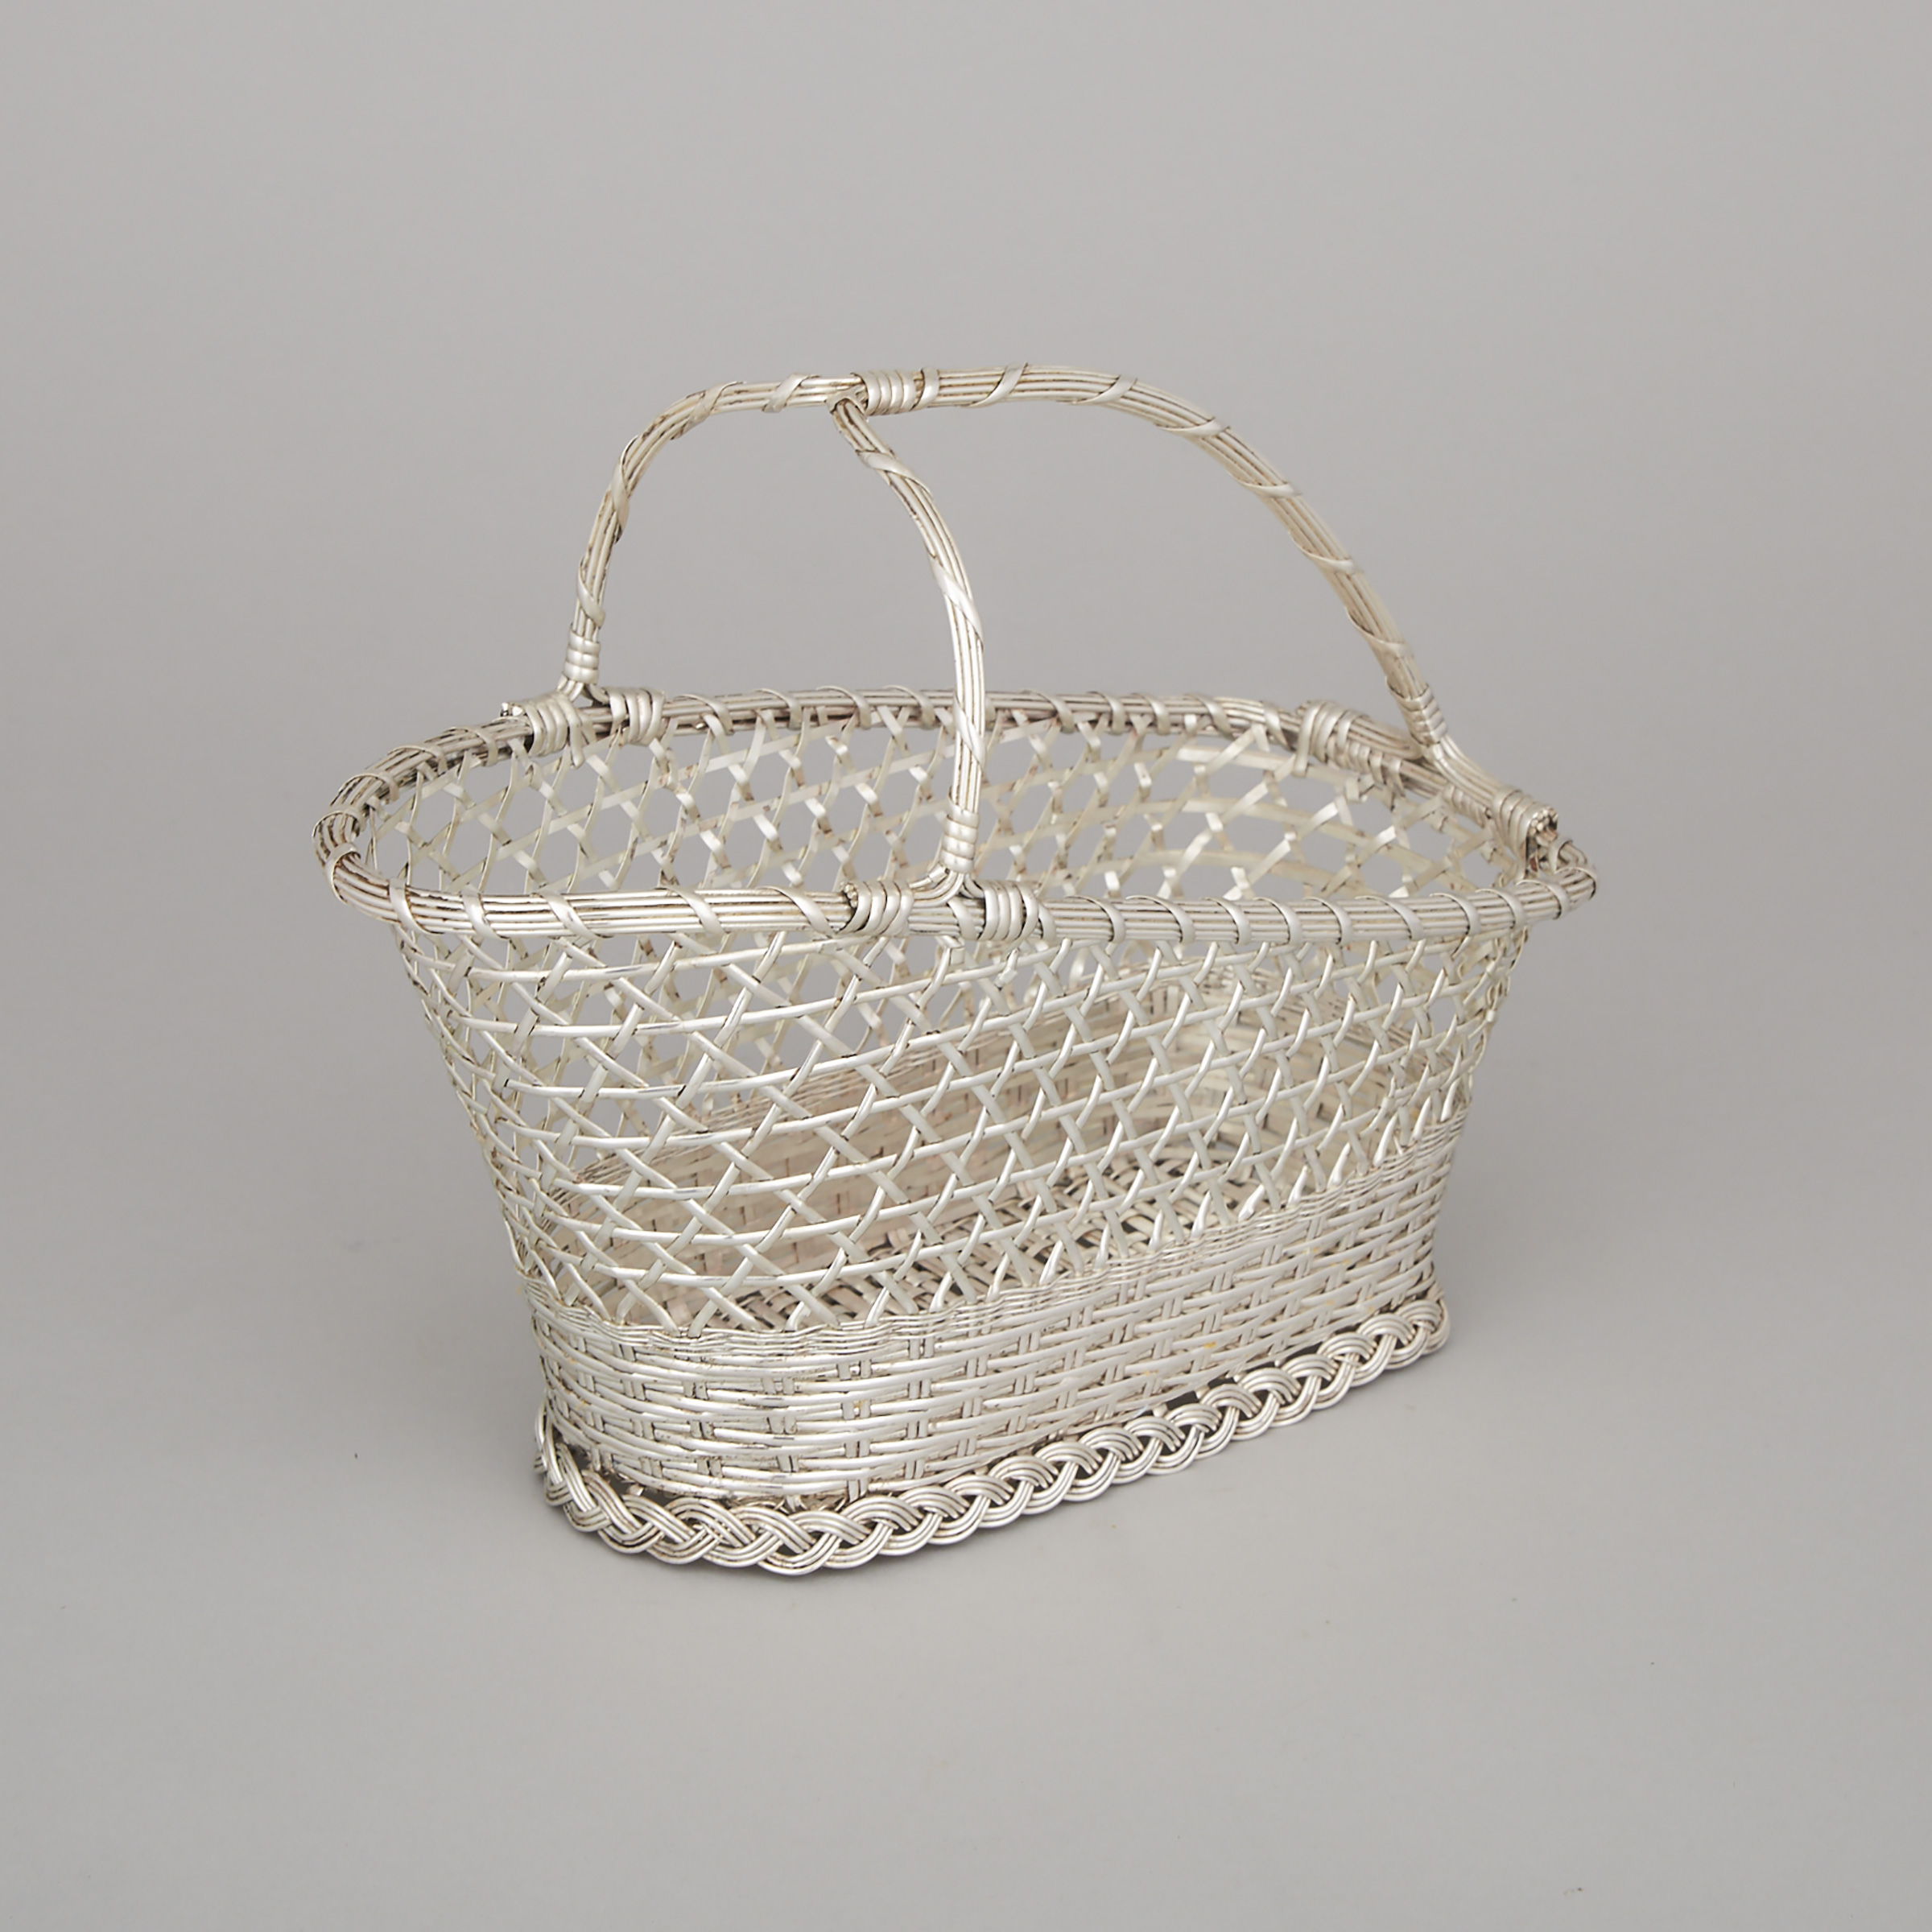 French Silver Plated Woven Wine Basket, Christofle, 20th century